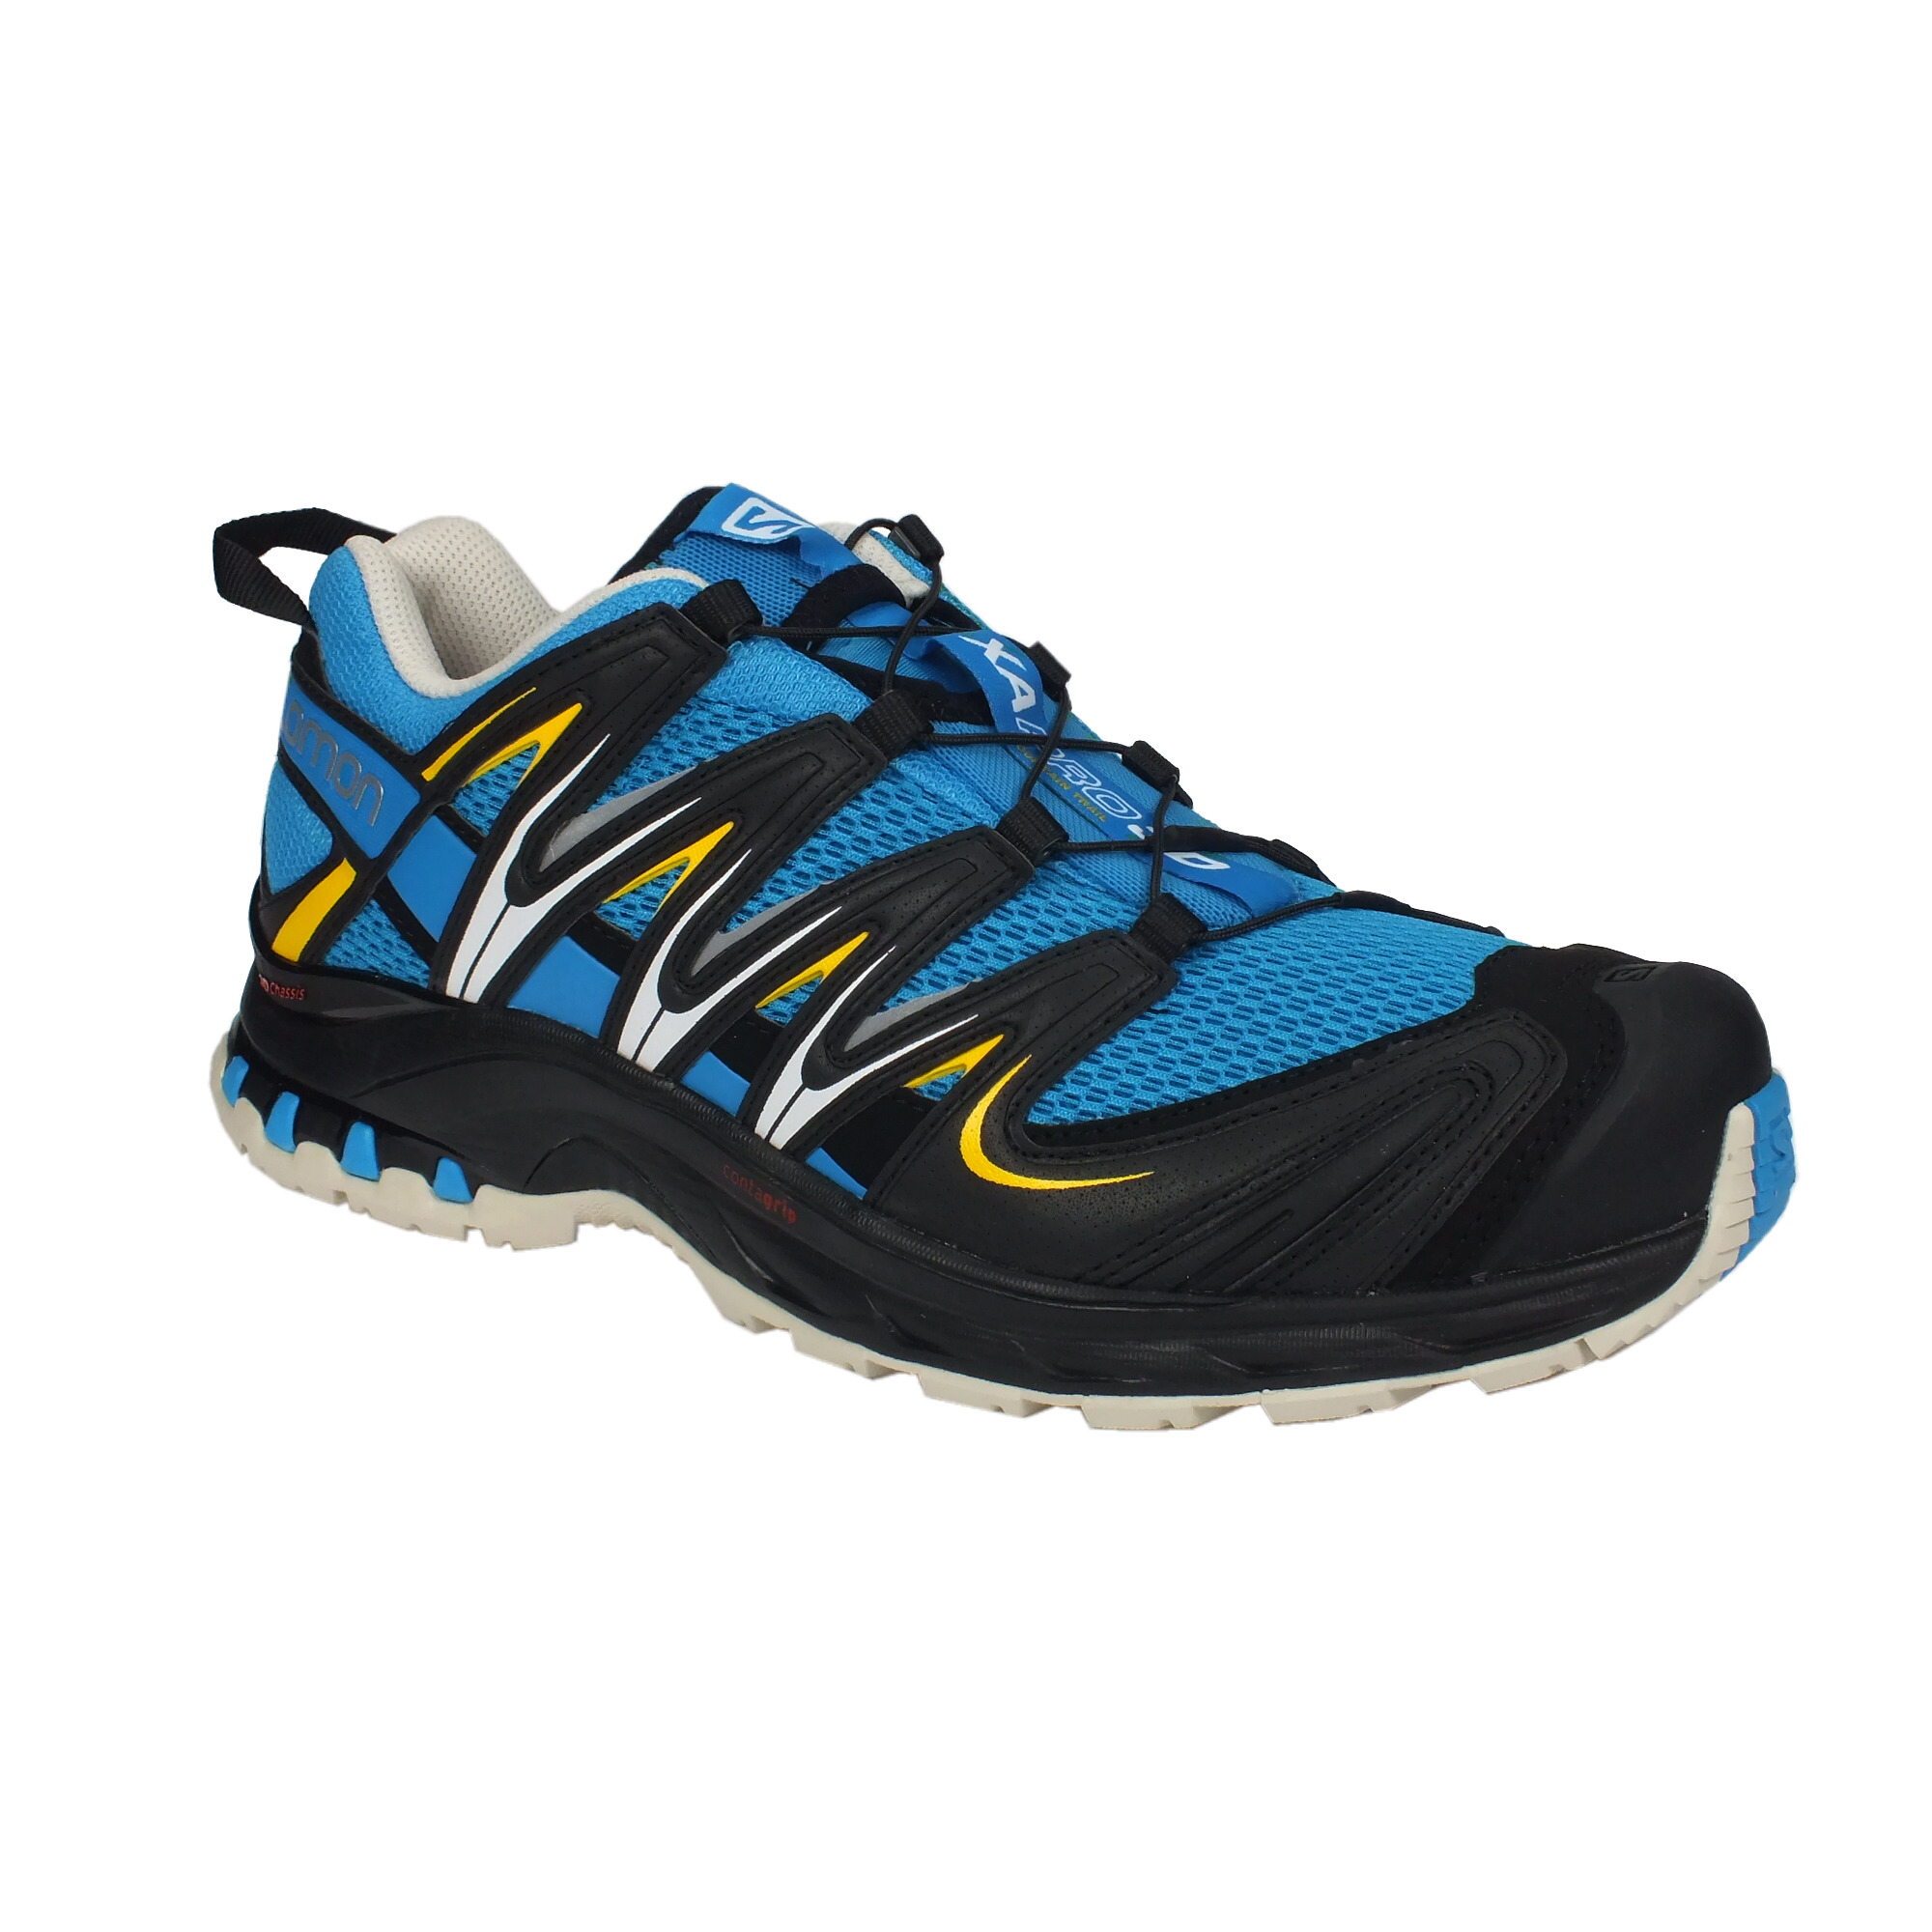 salomon xa pro 3d schuhe laufschuhe joggingschuhe trail running outdoor herren ebay. Black Bedroom Furniture Sets. Home Design Ideas